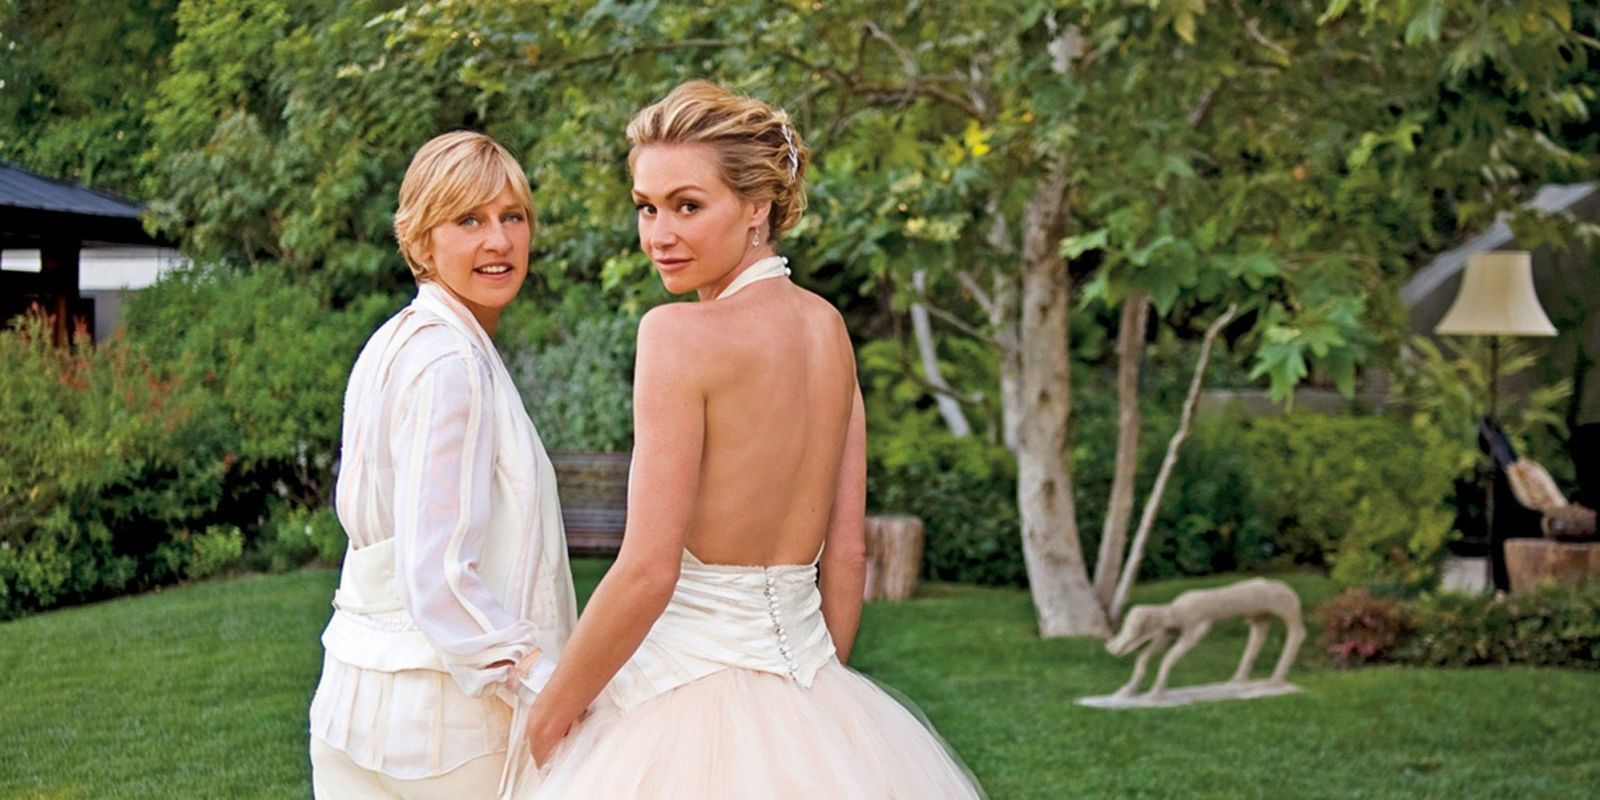 Ellen and portia age difference